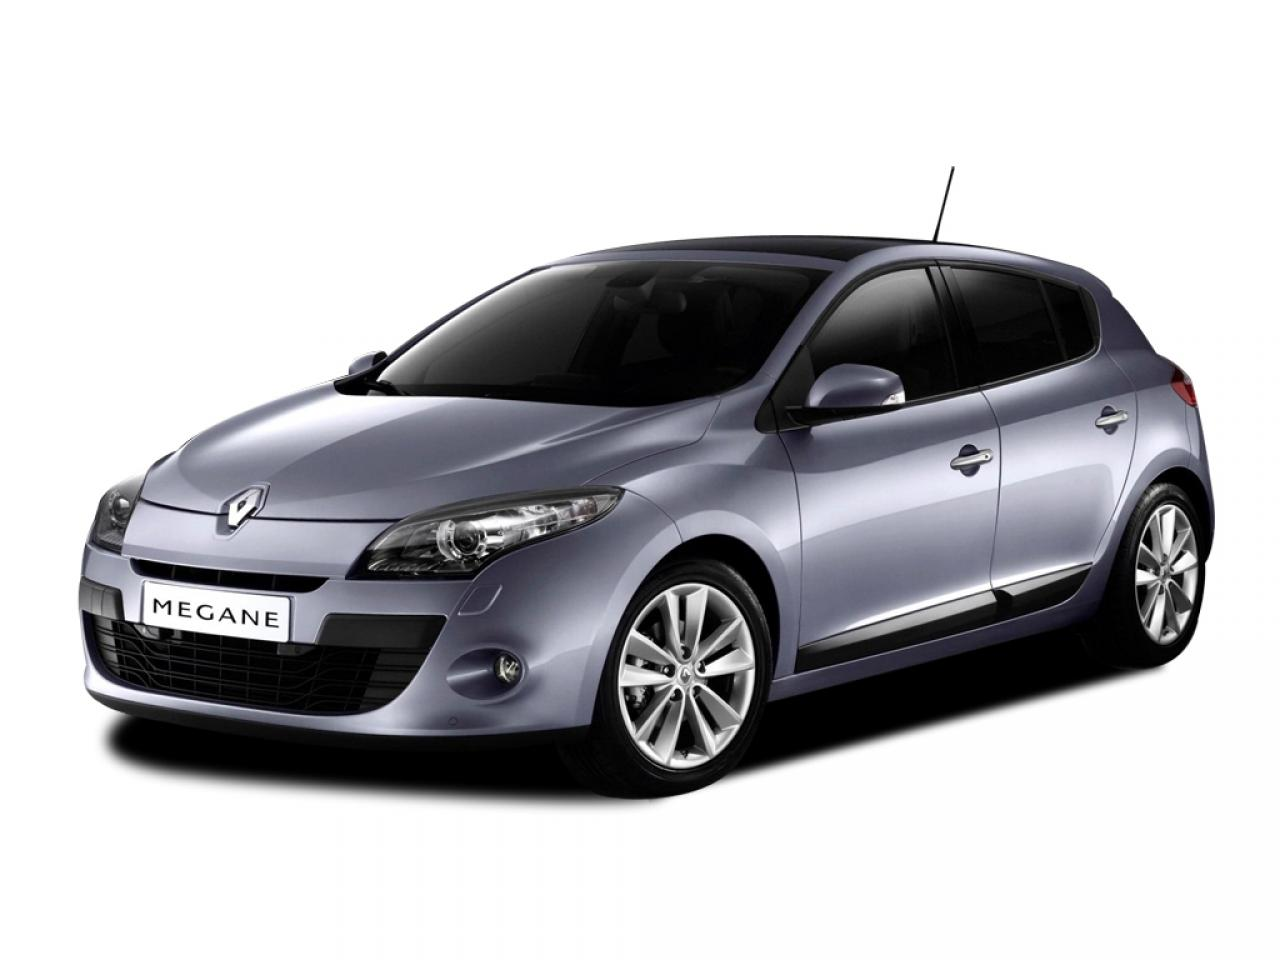 renault megane iii coupe 20 tce photos reviews news specs buy car. Black Bedroom Furniture Sets. Home Design Ideas